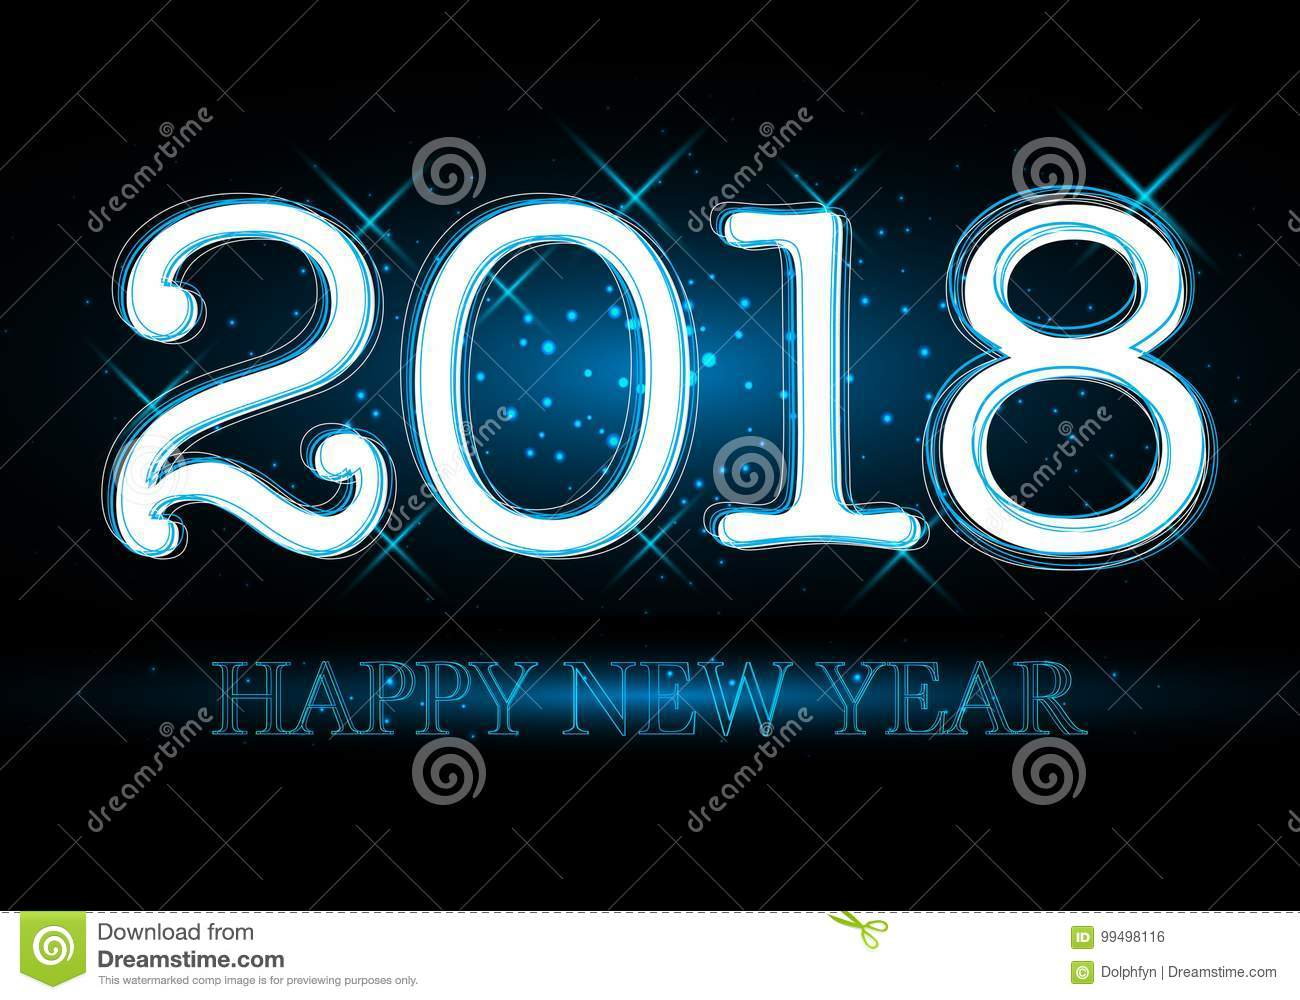 happy new year 2018 wish you all the best as always in this coming new year